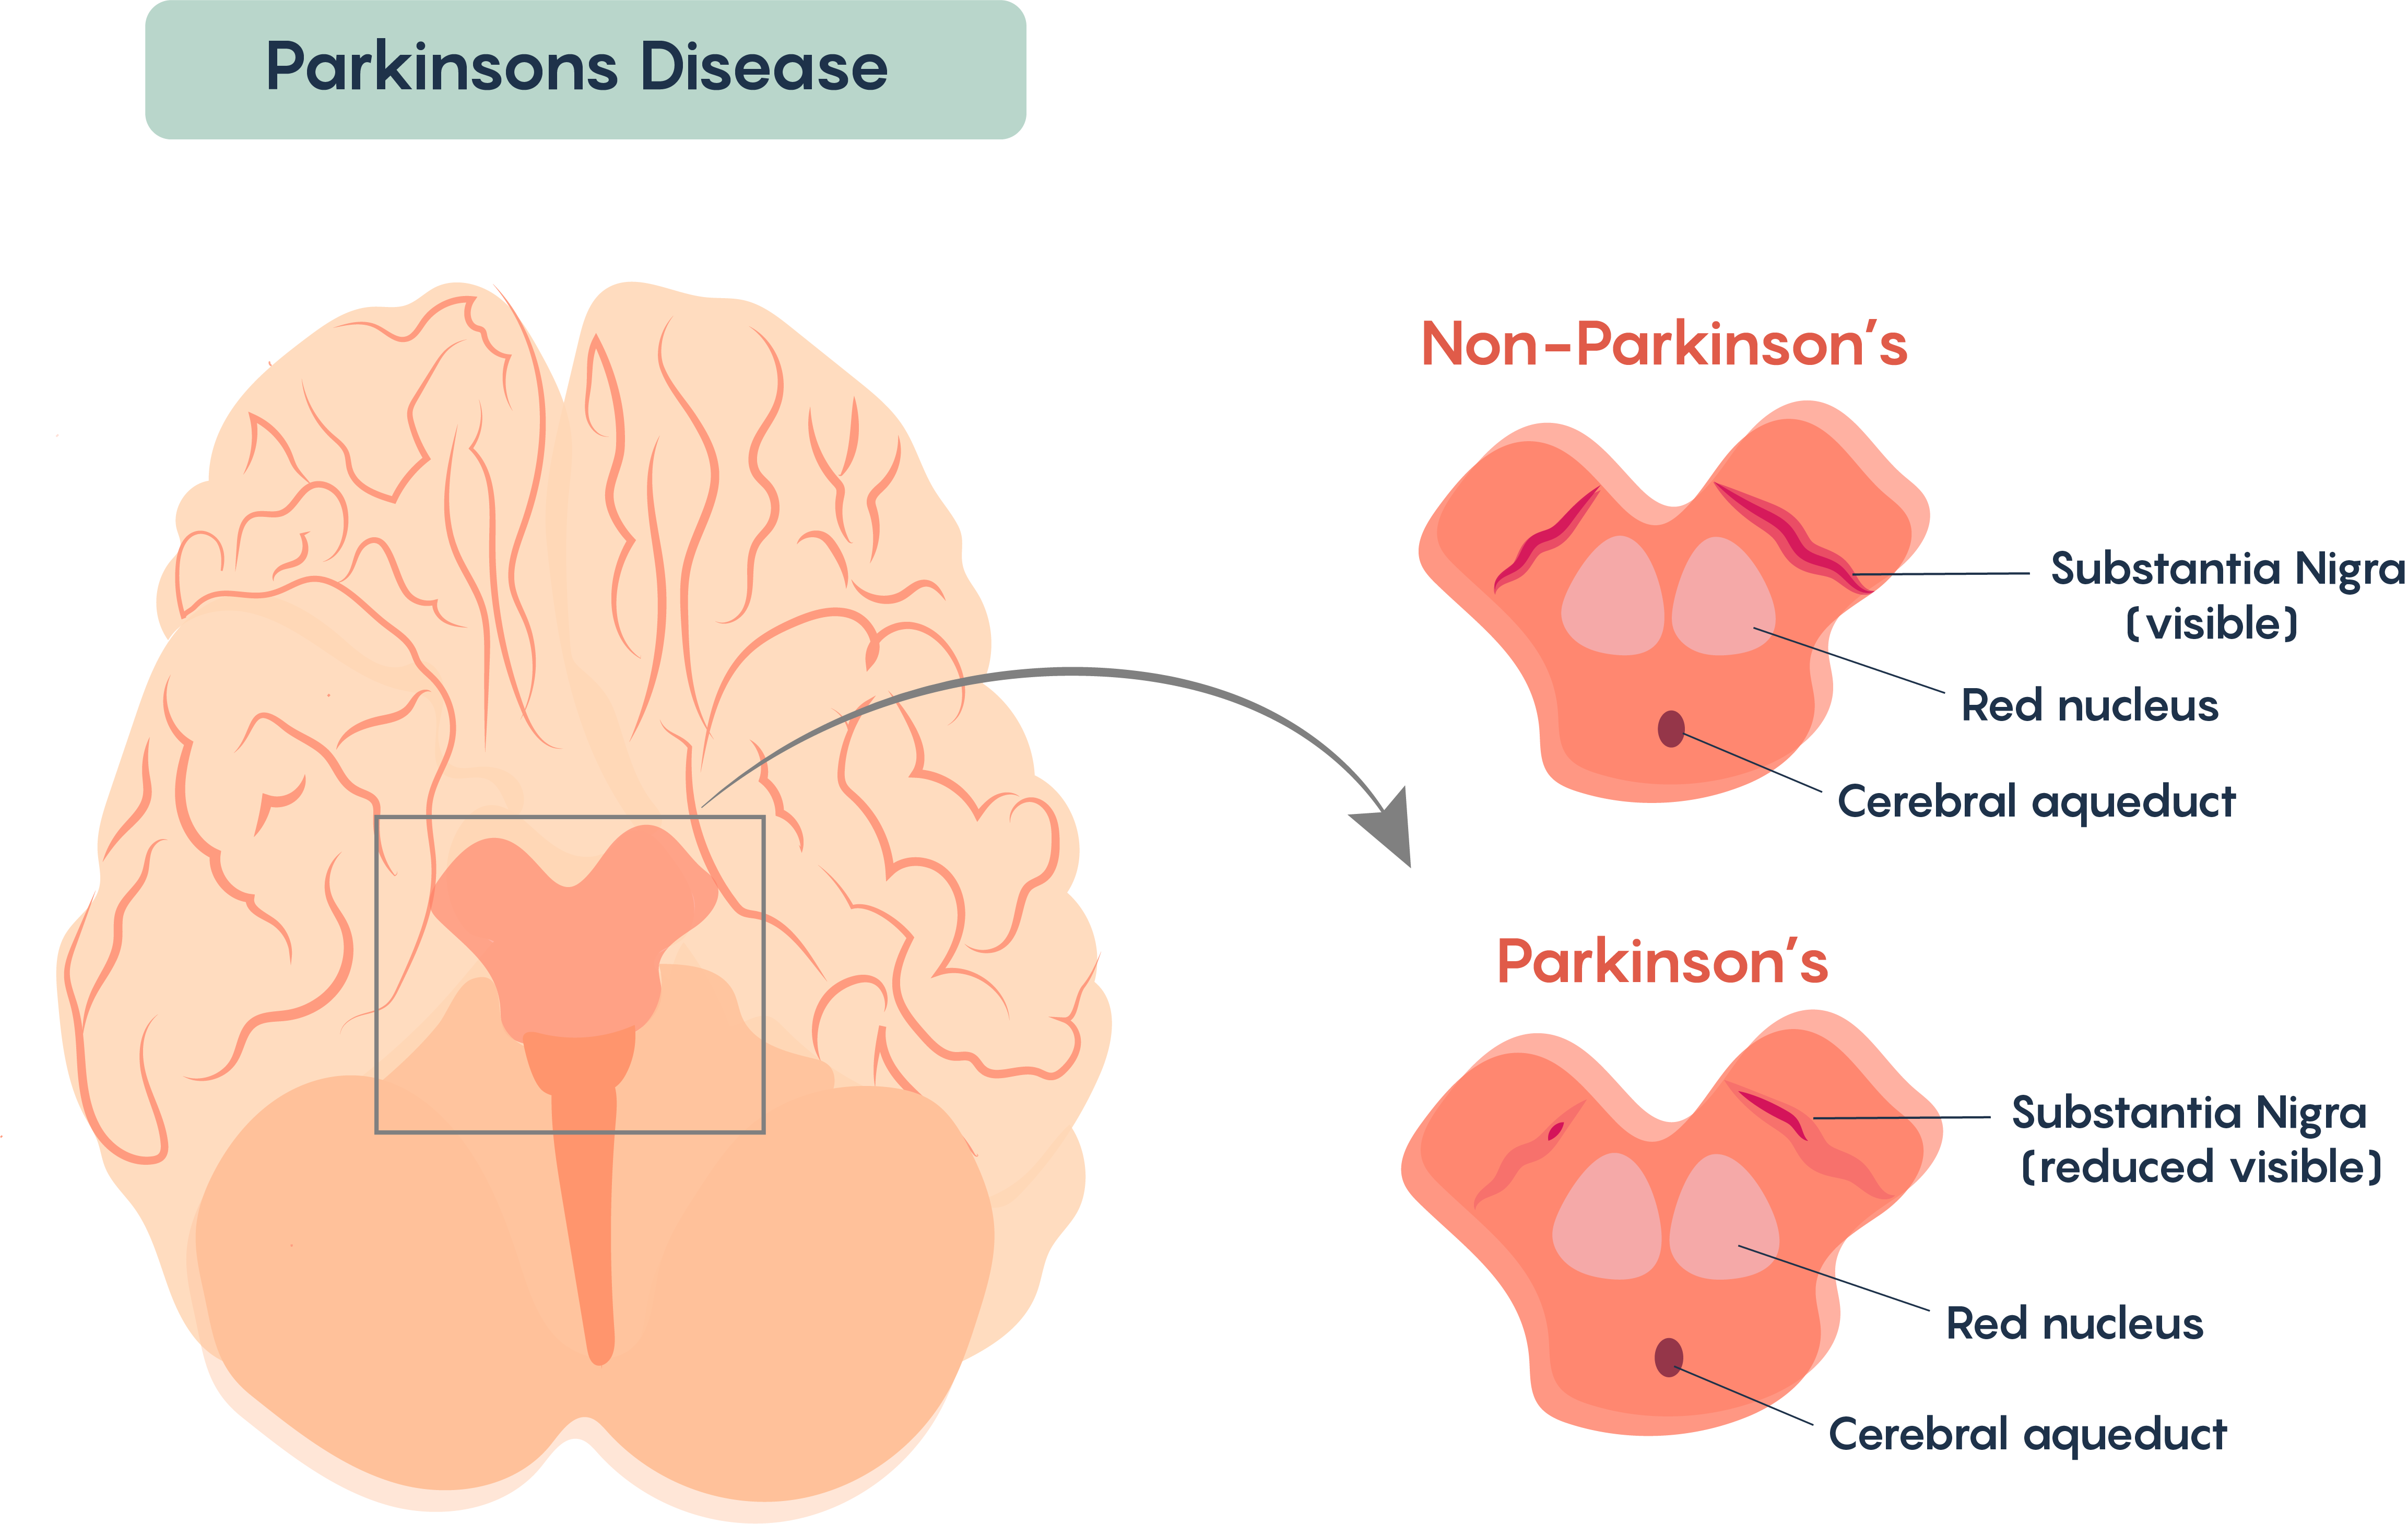 Loss of the pigmented dopaminergic neurons within the Substantia Nigra of individuals with Parkinson's Disease.